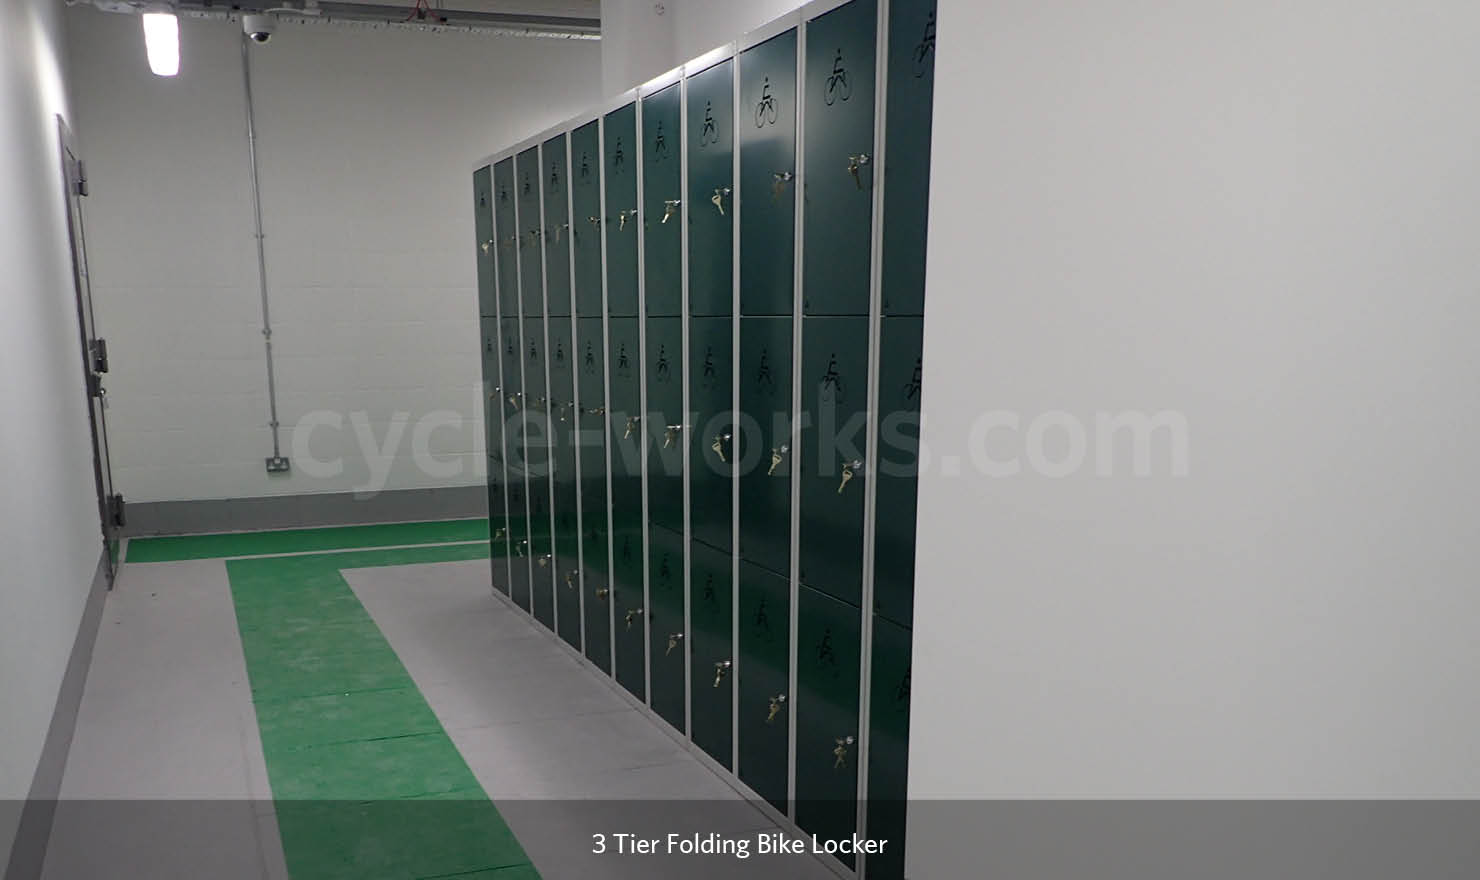 Three Tier Folding Bike Lockers